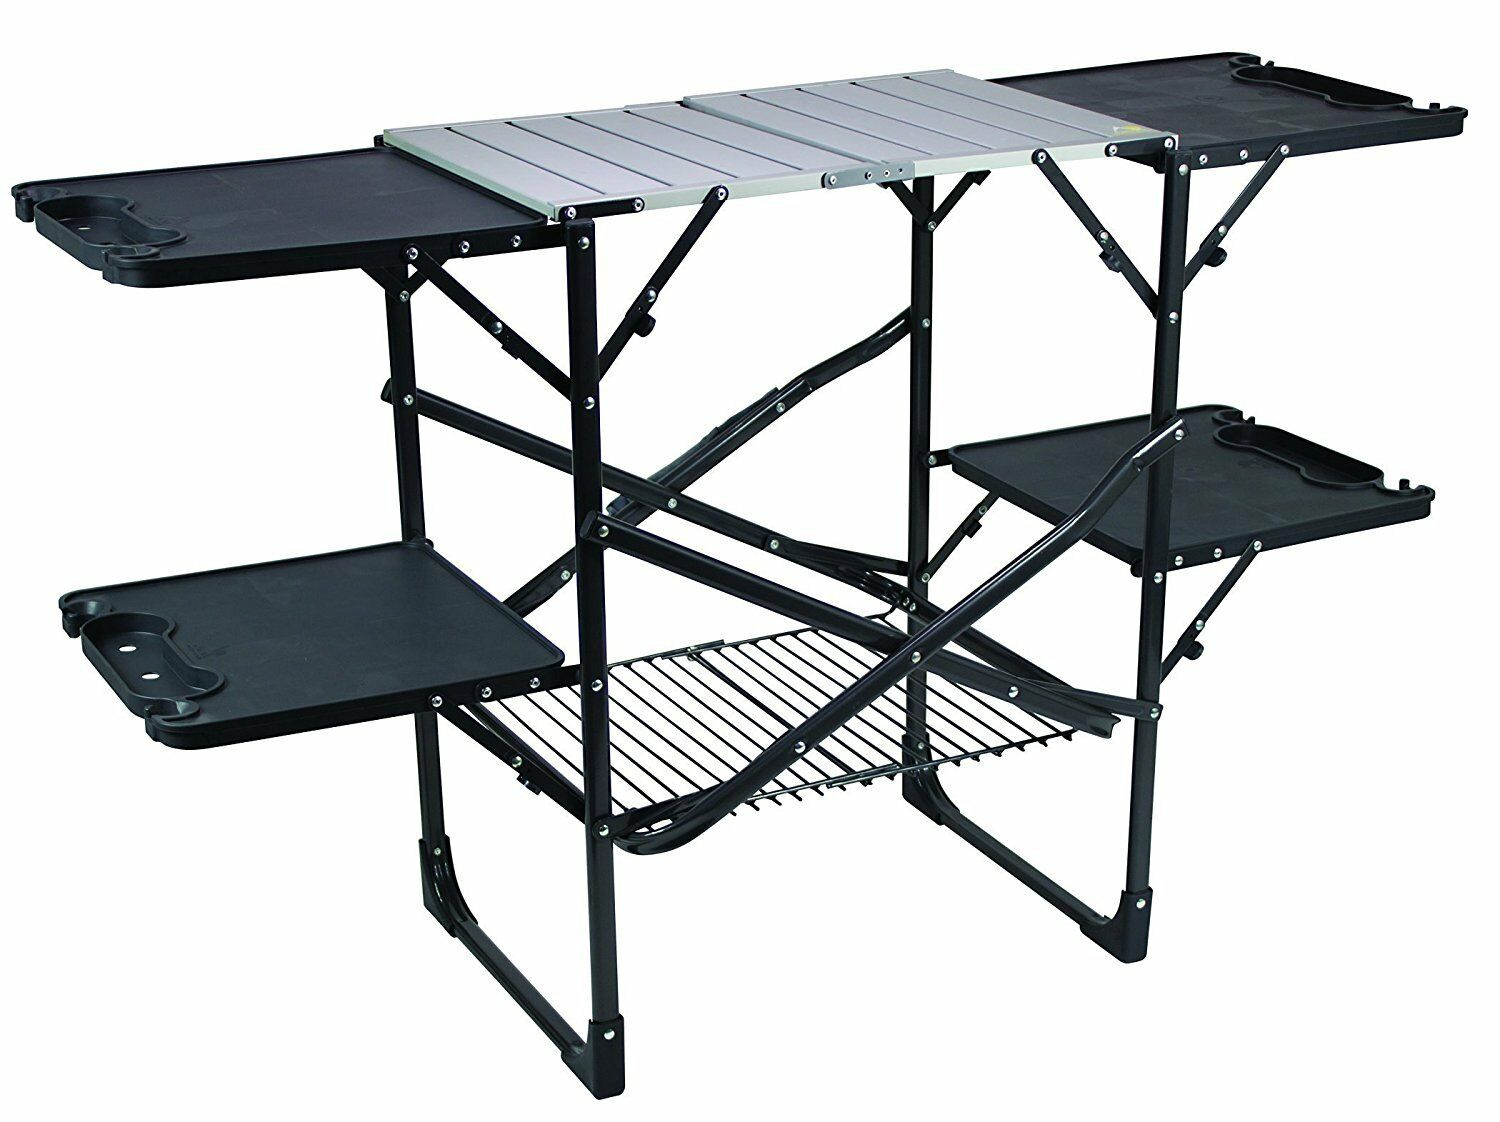 Outdoor Cooking Stuff Camping Table Station  Portable Folding Picnic Appliances  big discount prices